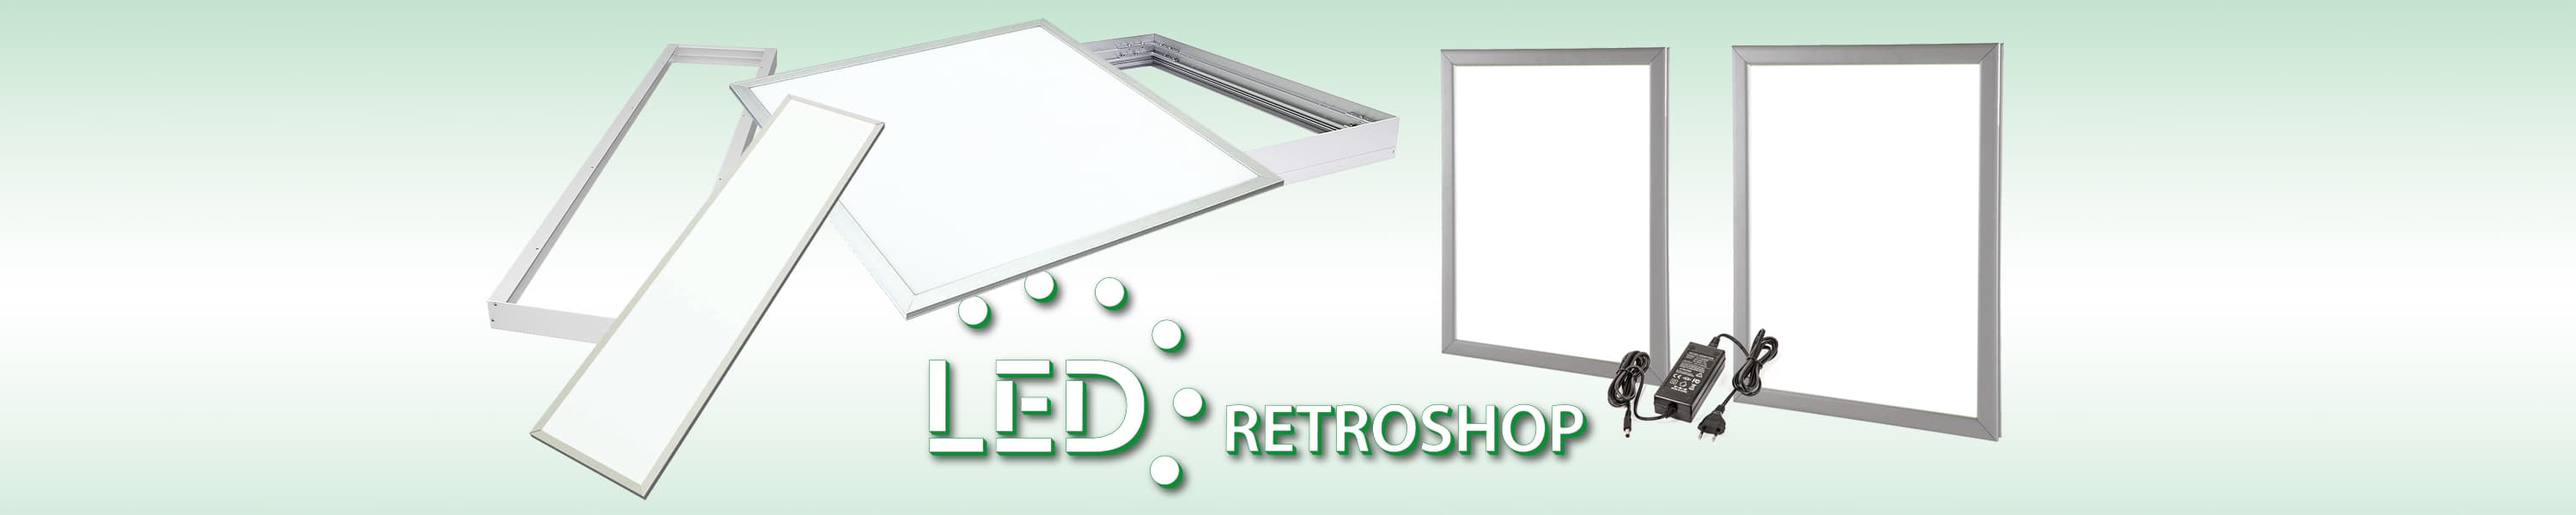 LED Retroshop Produkte